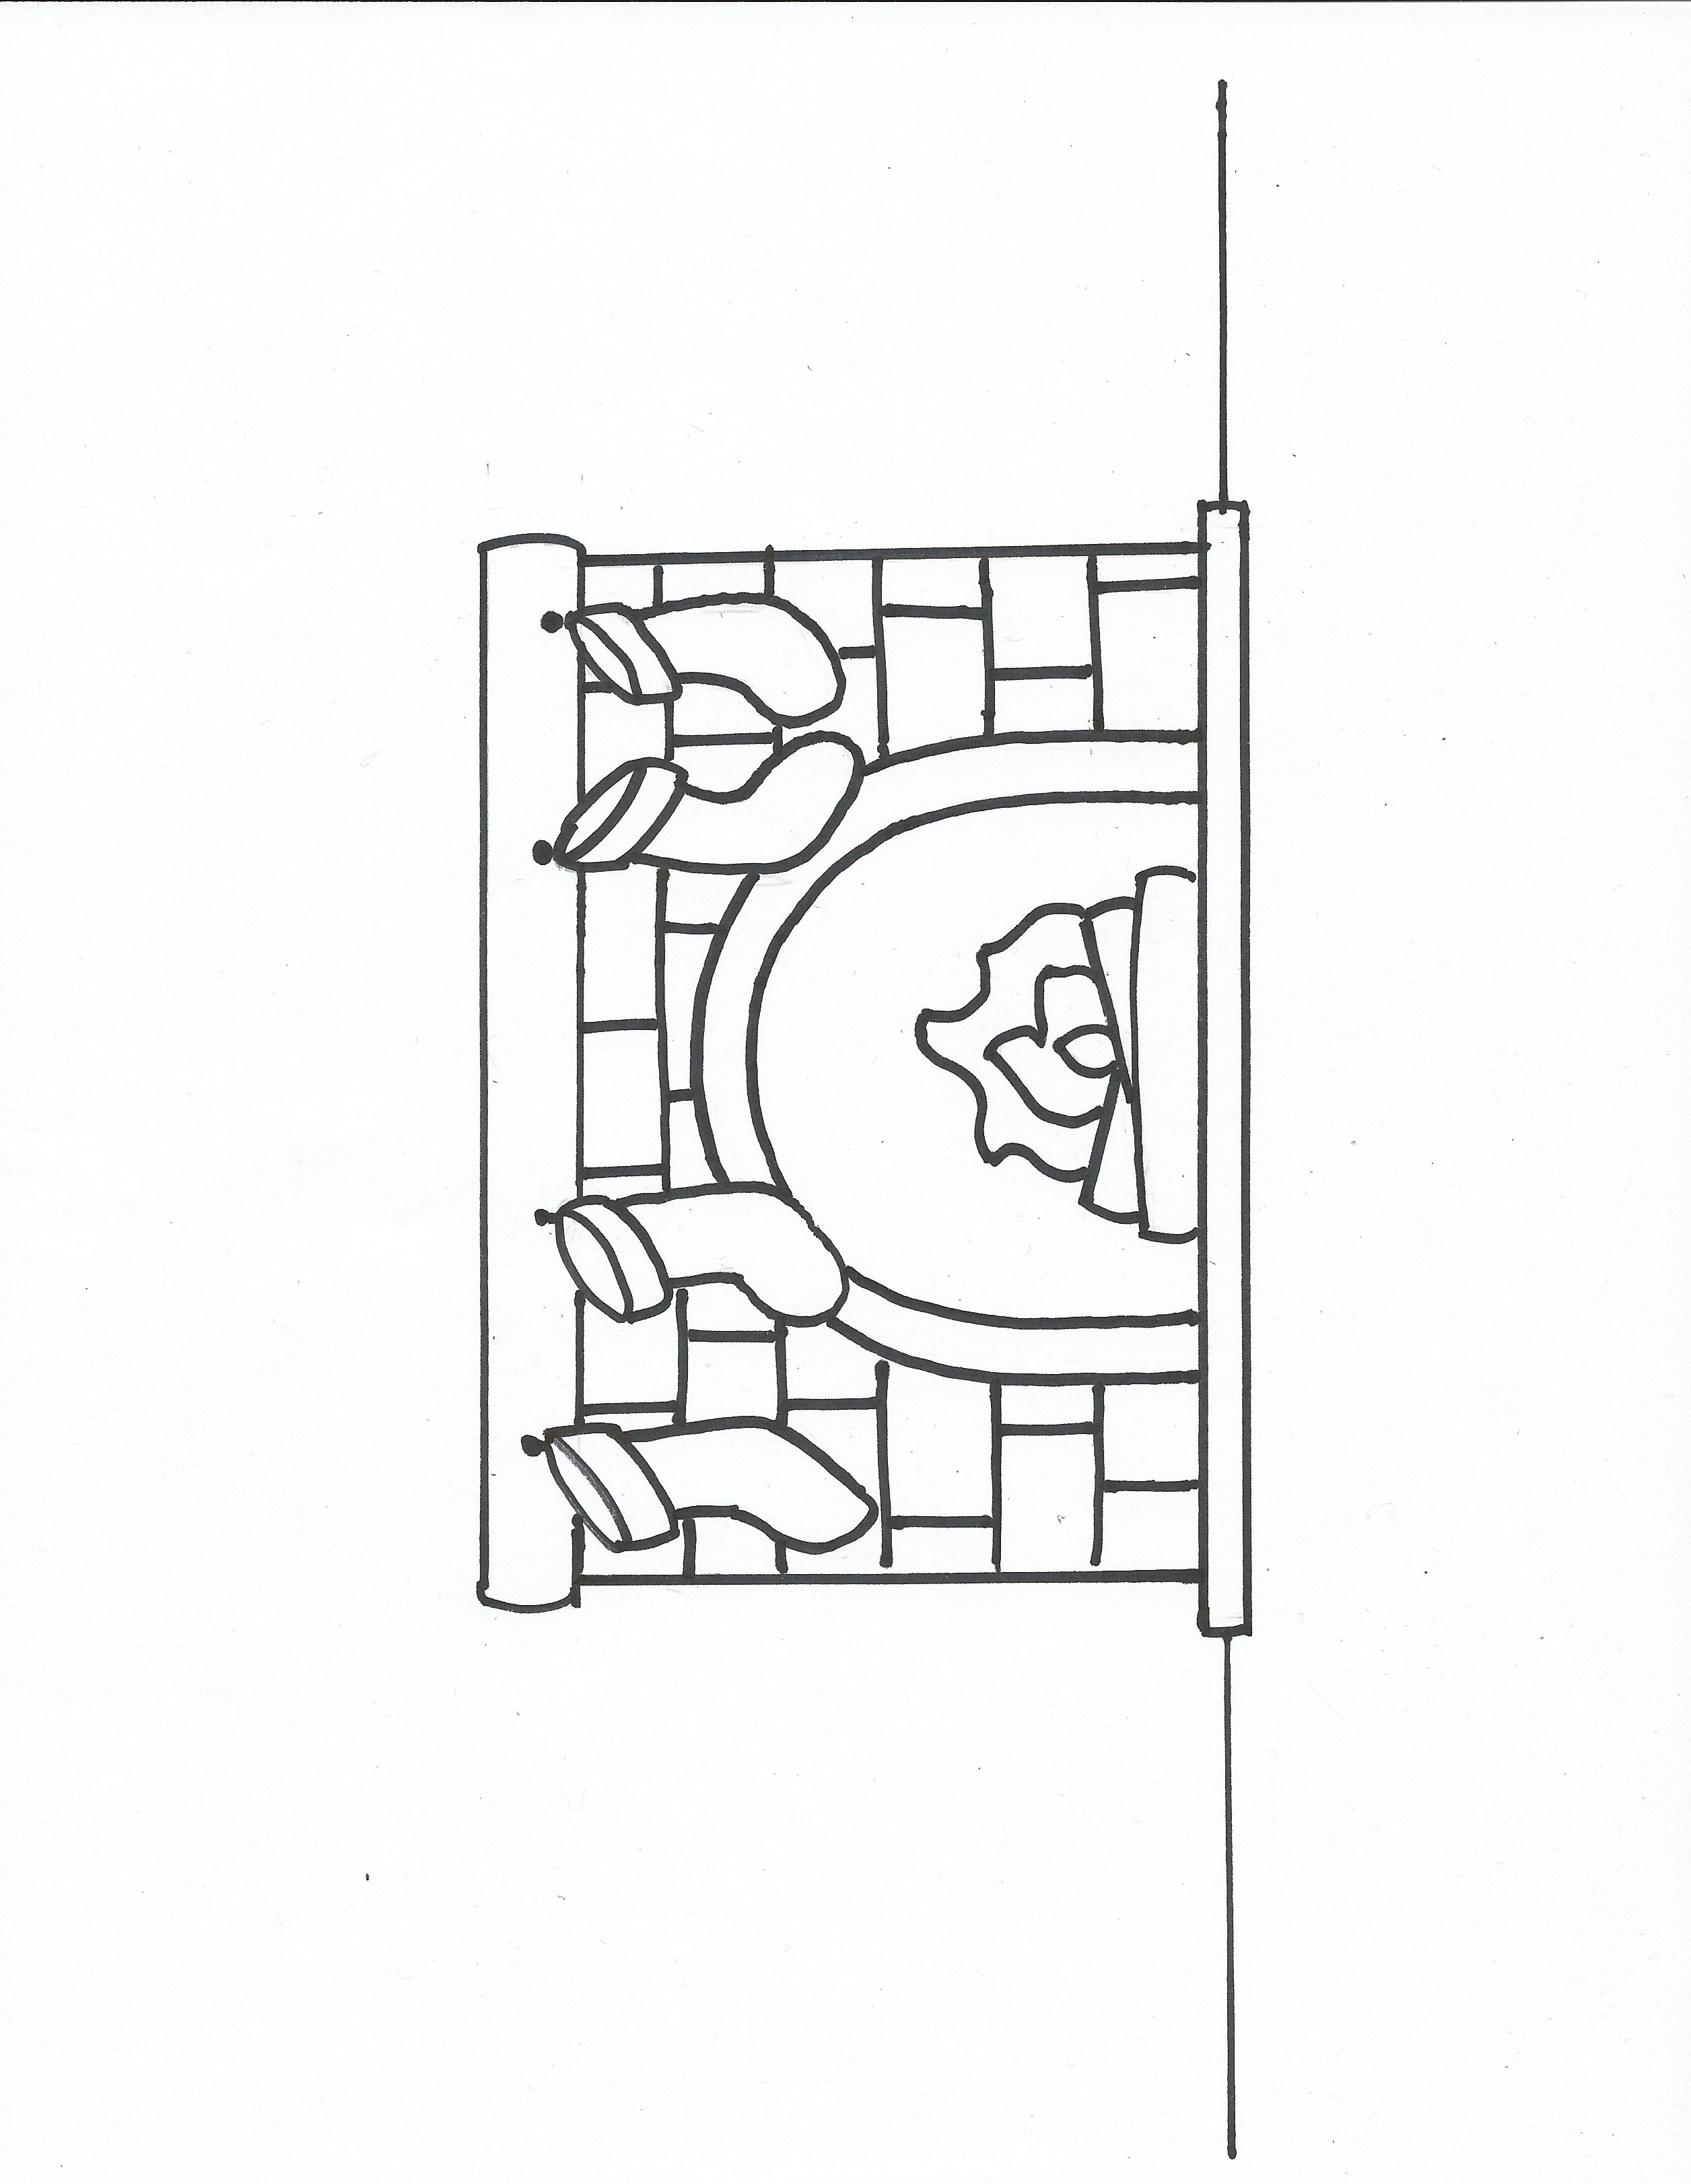 fireplace coloring page - printable coloring pages free samples free stuff